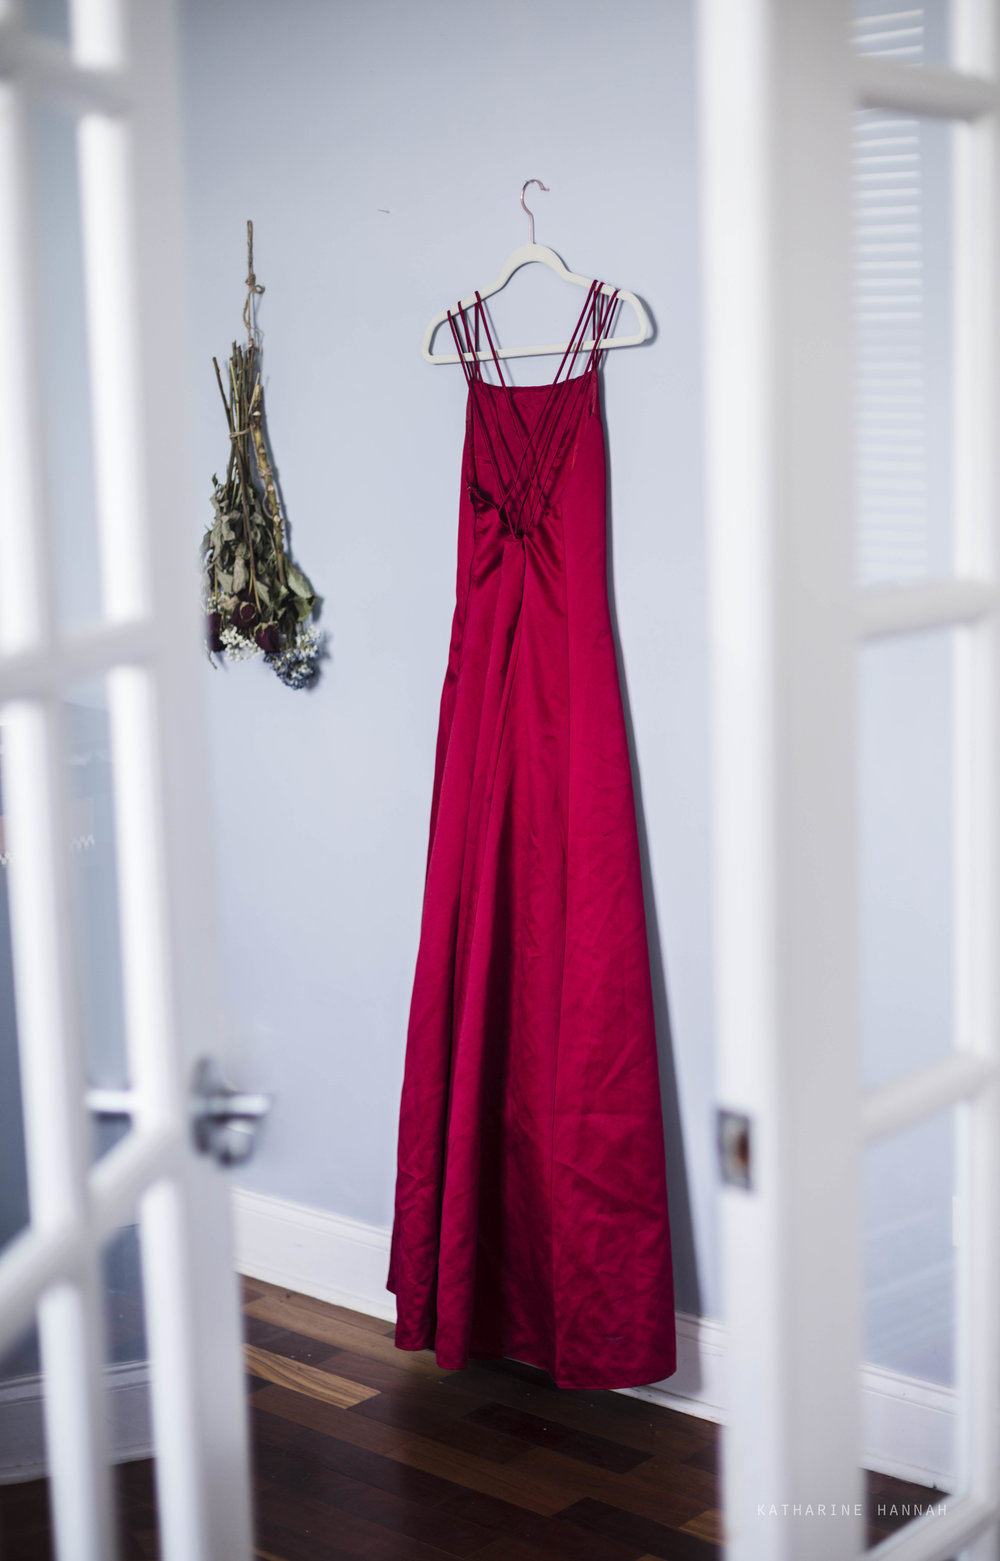 Betsy & Adam gown in Chicago photo studio for clients to wear